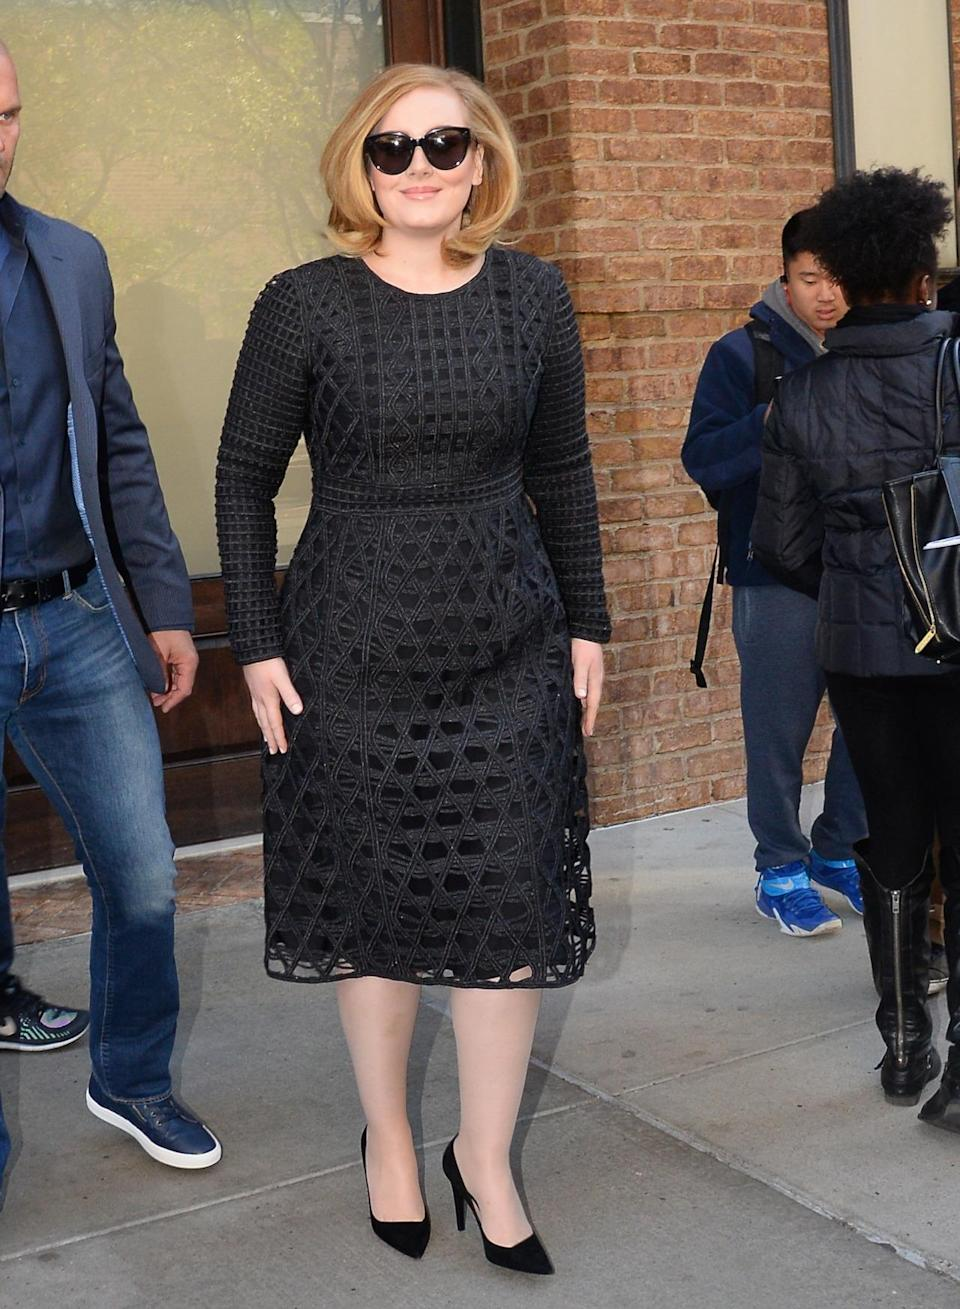 <p>Spotted on the streets of New York City, Adele stepped out looking like the megastar she is in a black lattice dress. Her hair was blown out with a little bounce and she covered her eyes, which were most likely adorned with cateye makeup, with cateye sunglasses. <i>Photo: Getty Images</i></p>